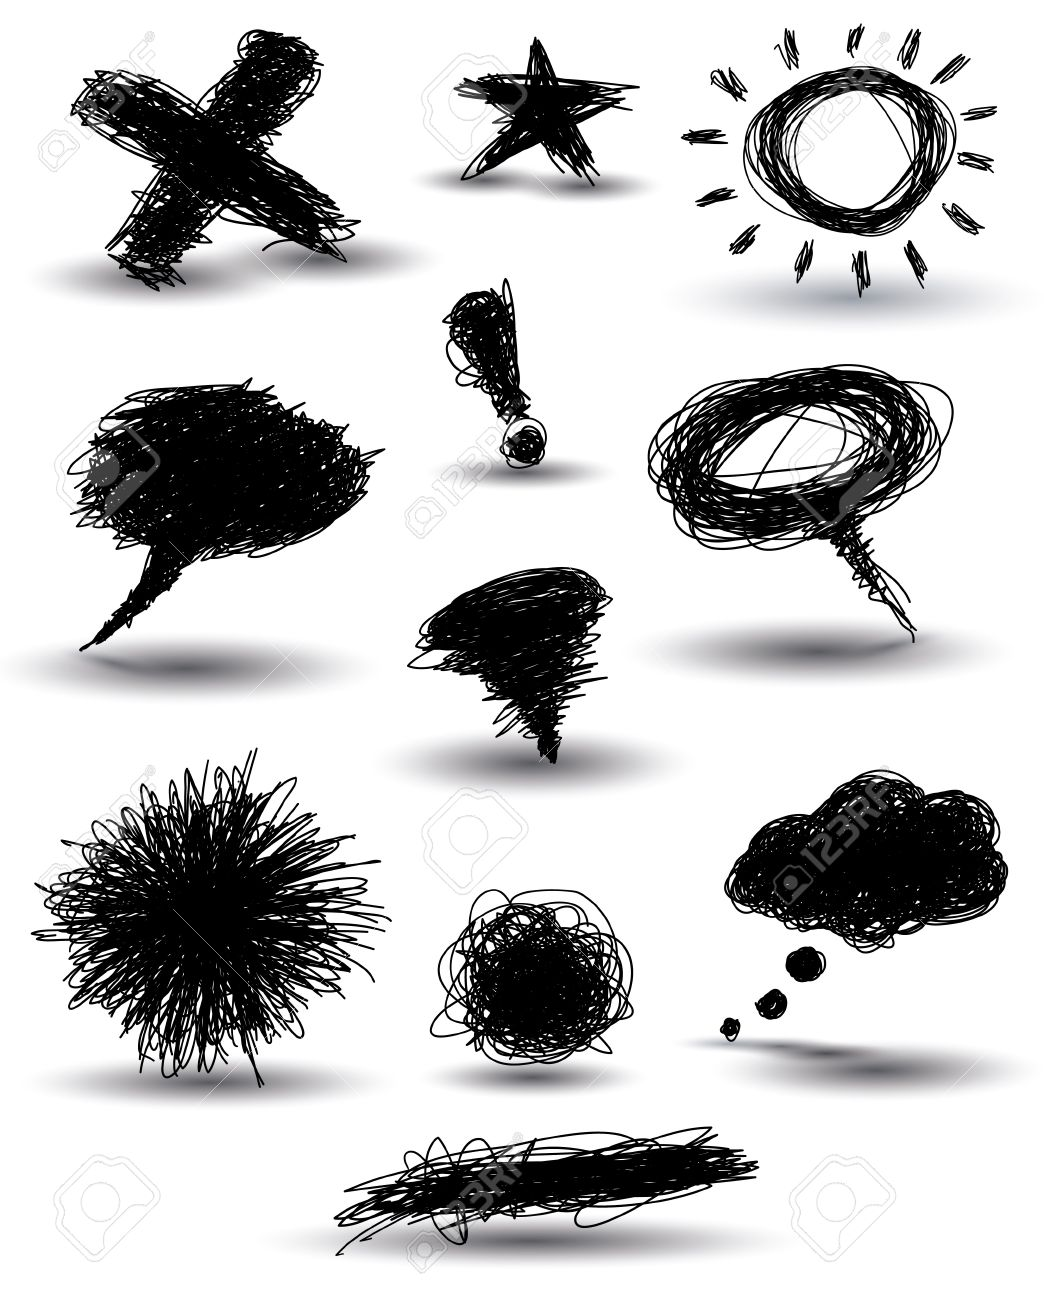 815 Dark Thoughts Stock Illustrations, Cliparts And Royalty Free.